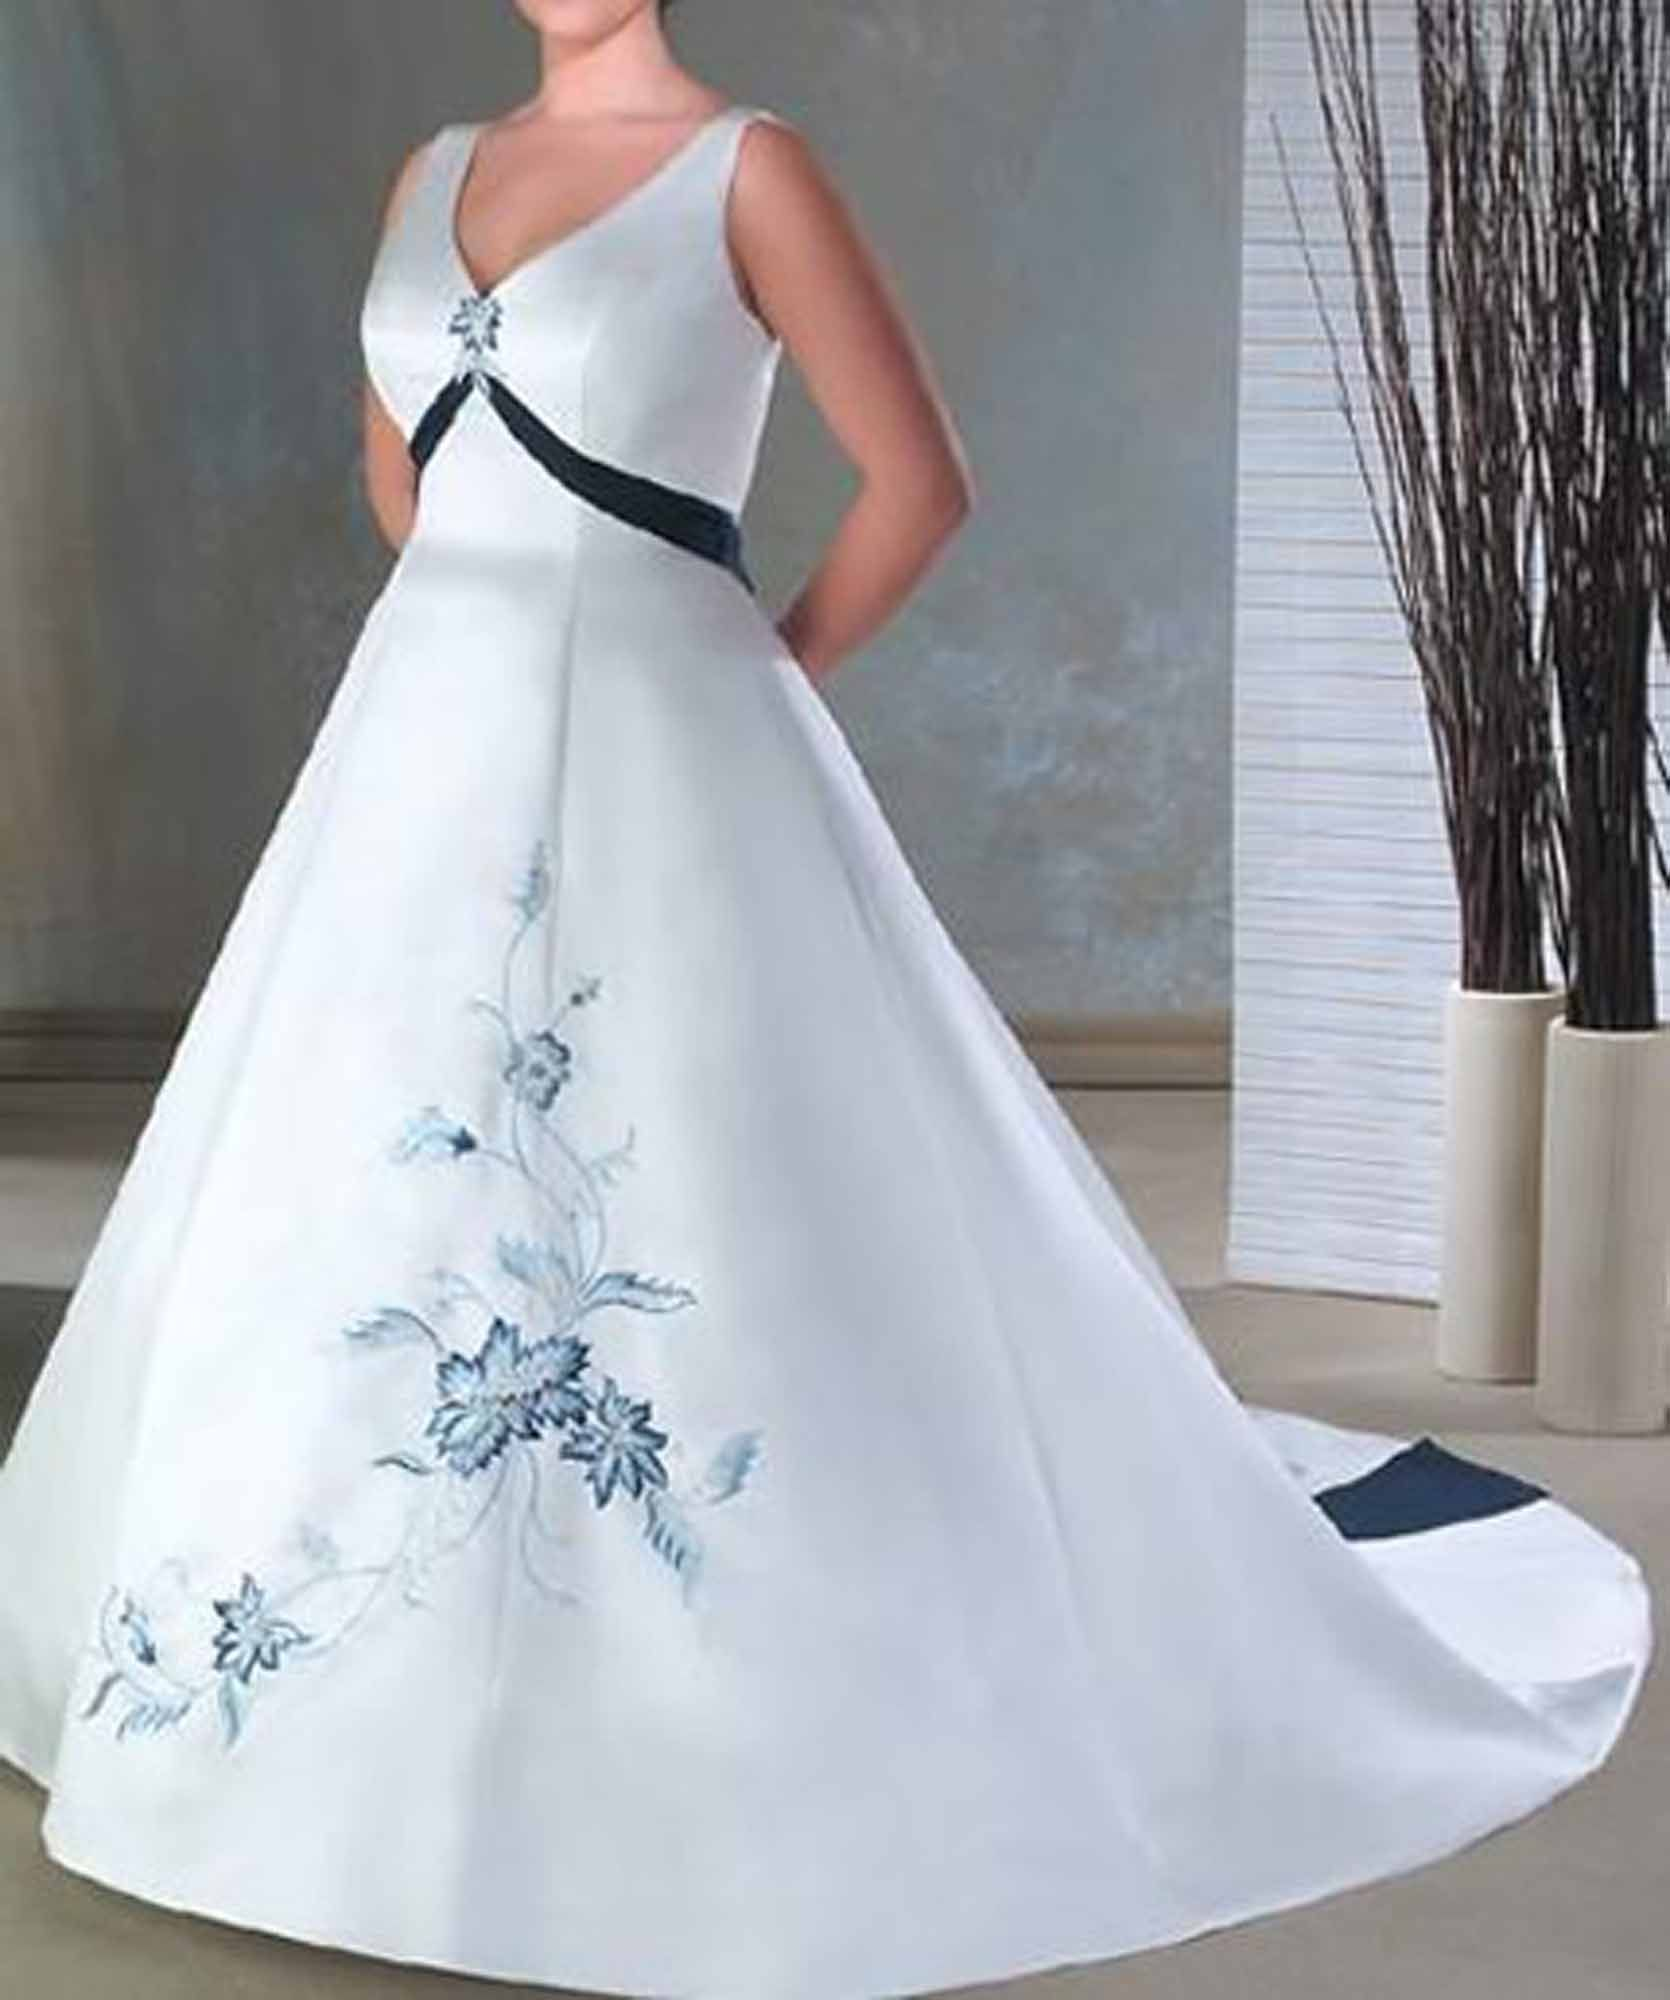 Plus Size Second Wedding Gowns – Dresses for Woman